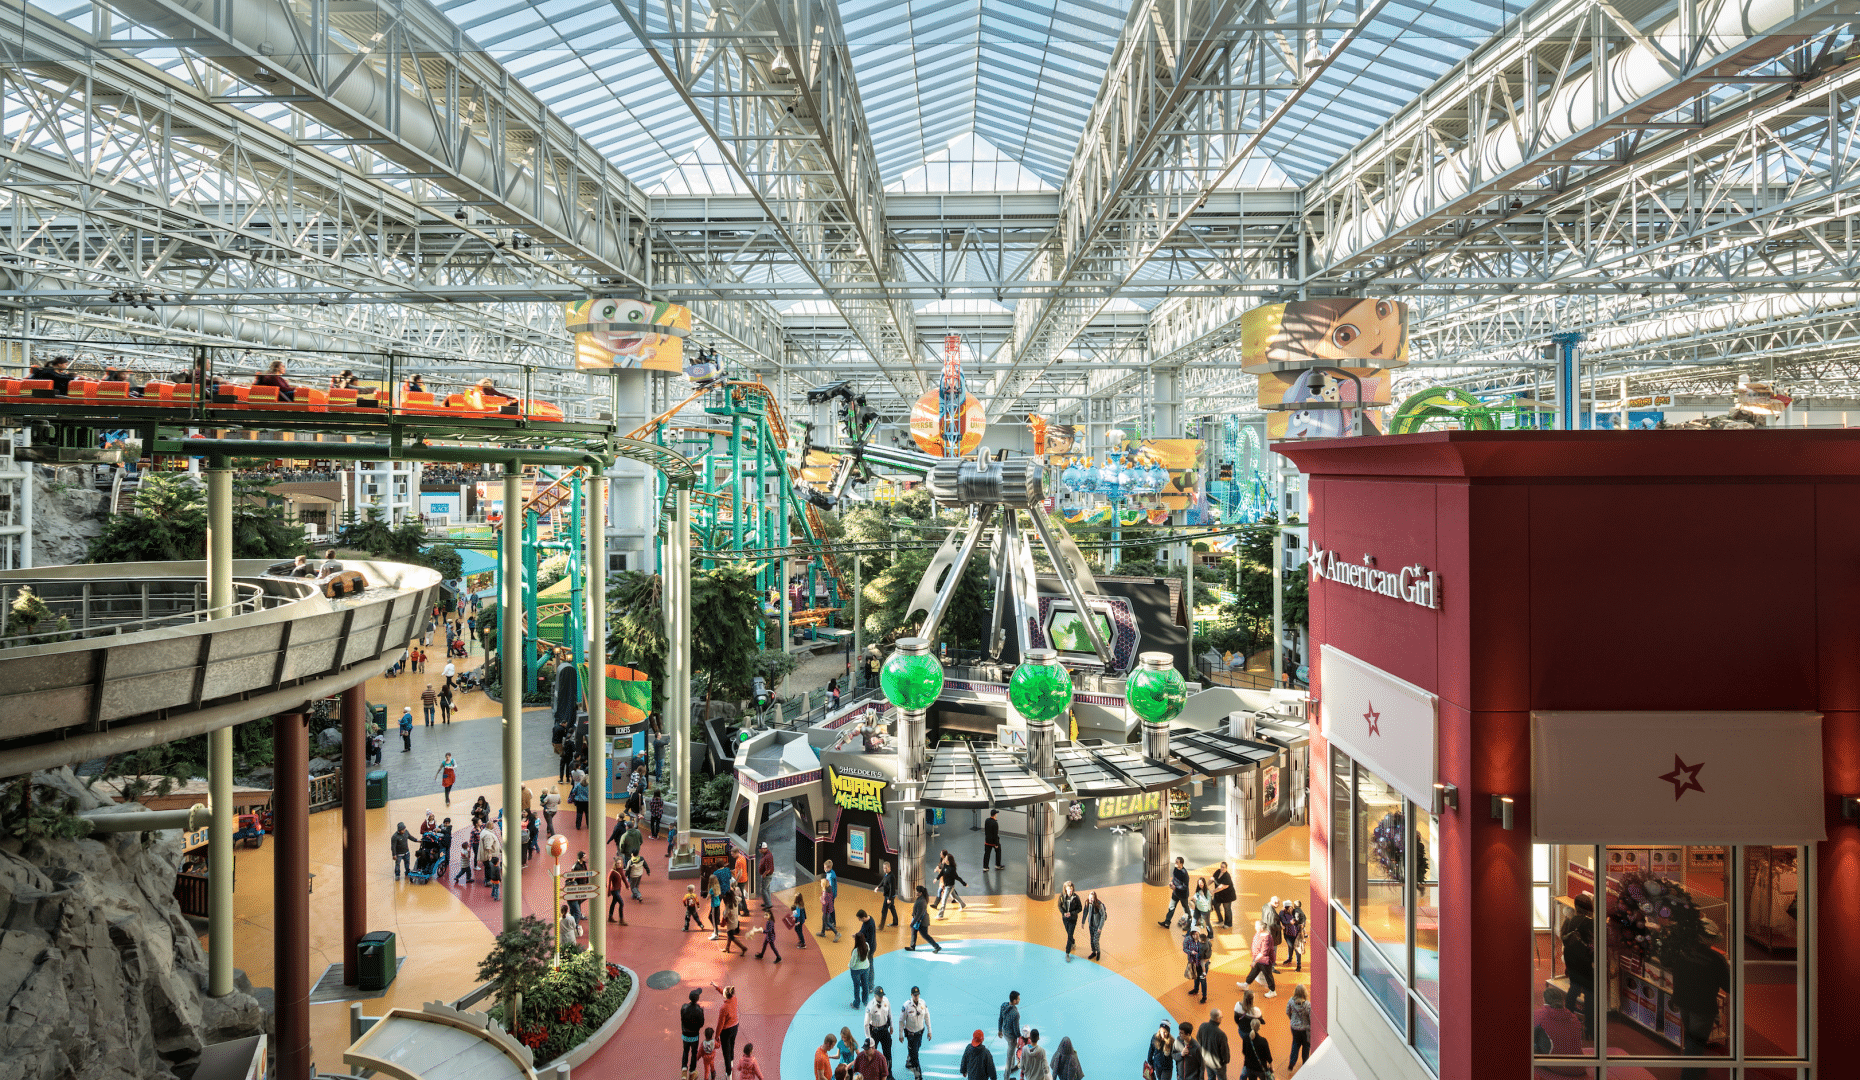 Les Choses 224 Faire Au Centre Commercial Mall Of America En